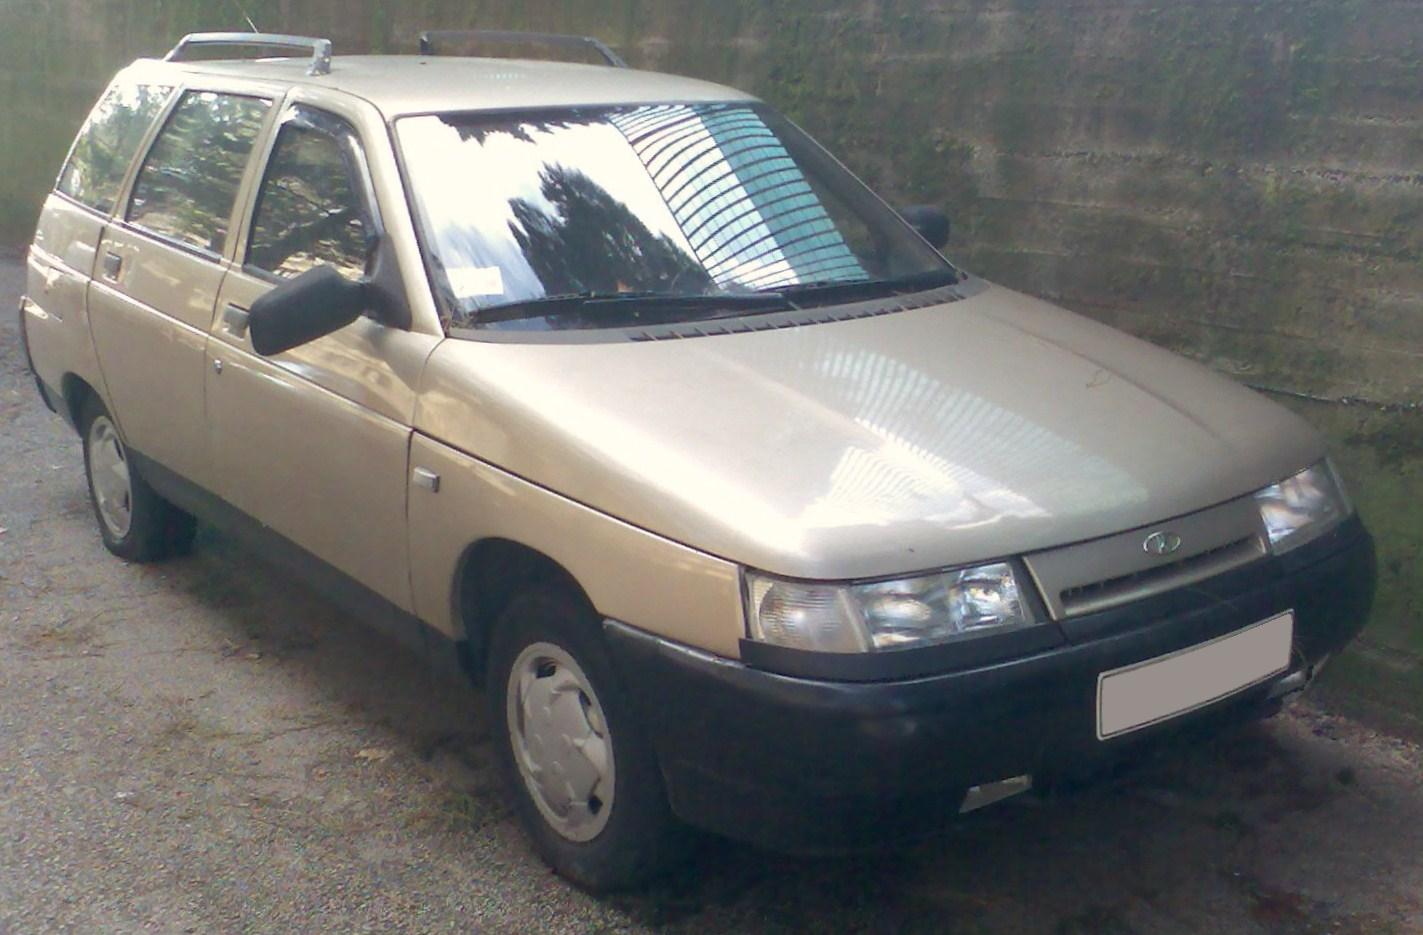 File:Lada 111 (2111) Station Wagon.jpg